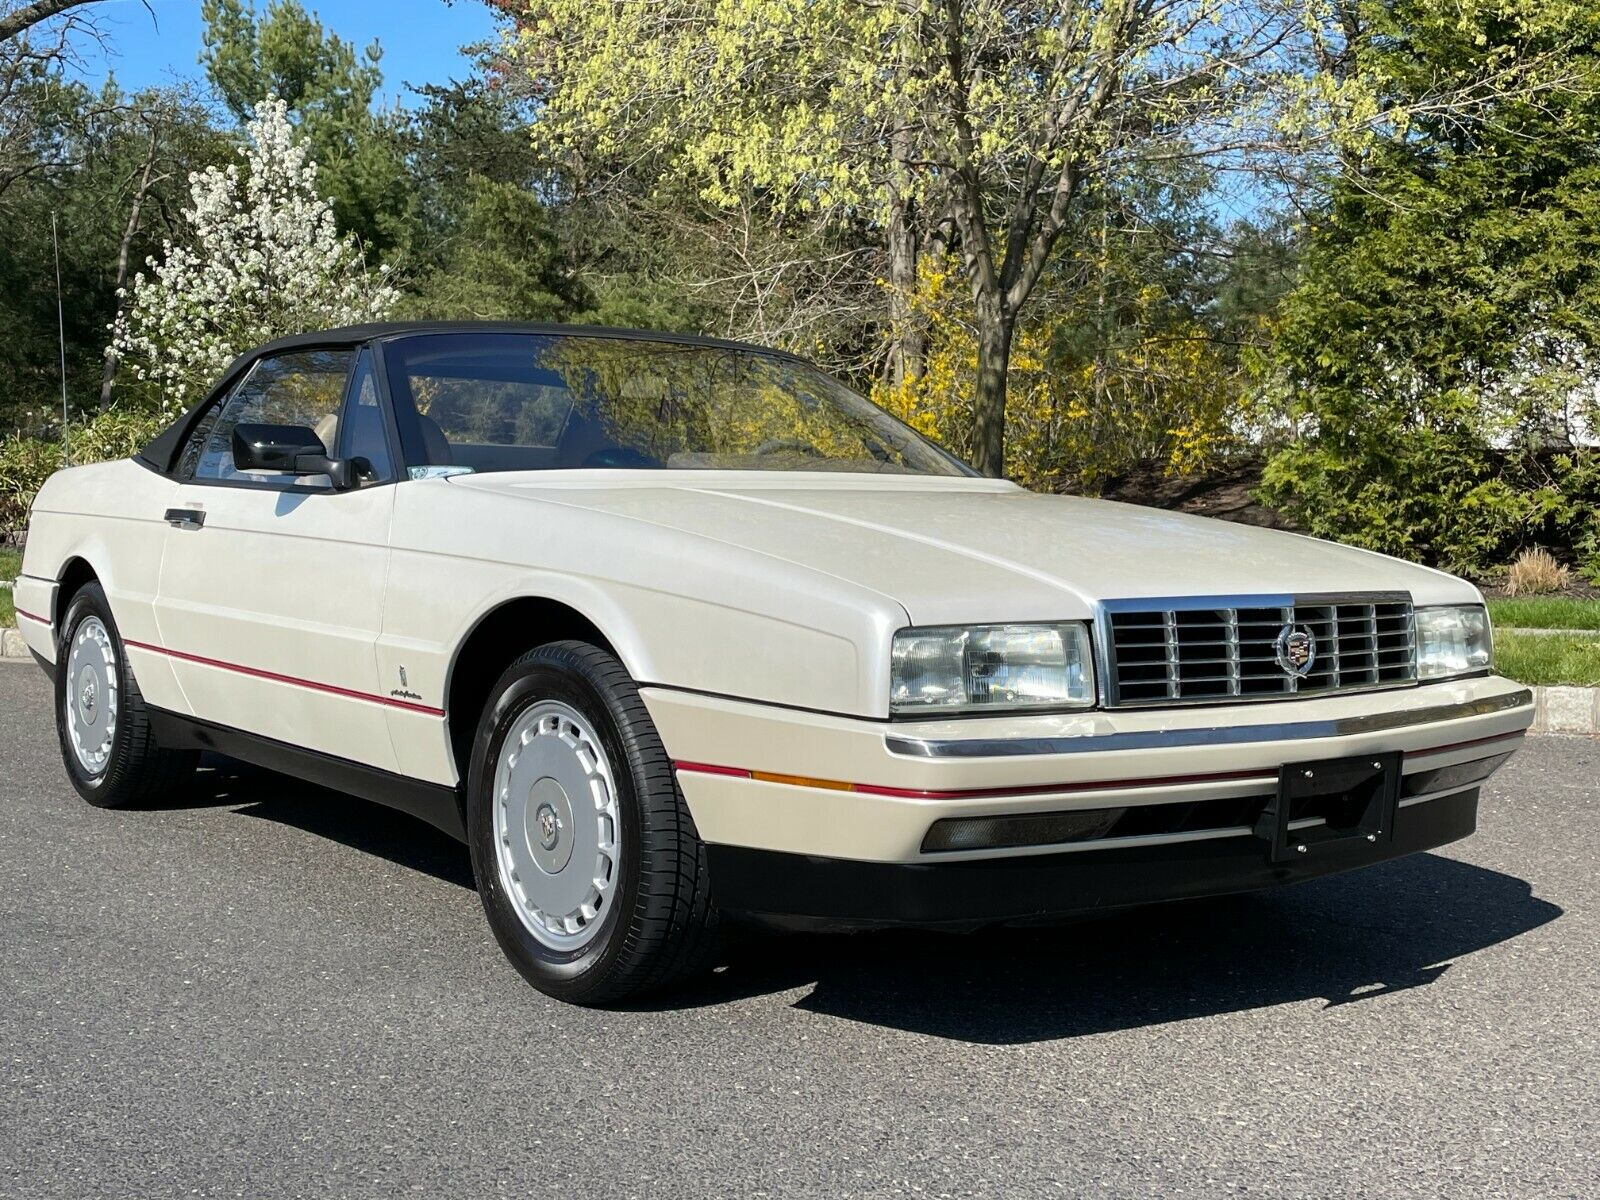 1992 CADILLAC ALLANTE SOFT TOP CONVERTIBLE ONLY 49K MILES RARE FIND LOW MILES !